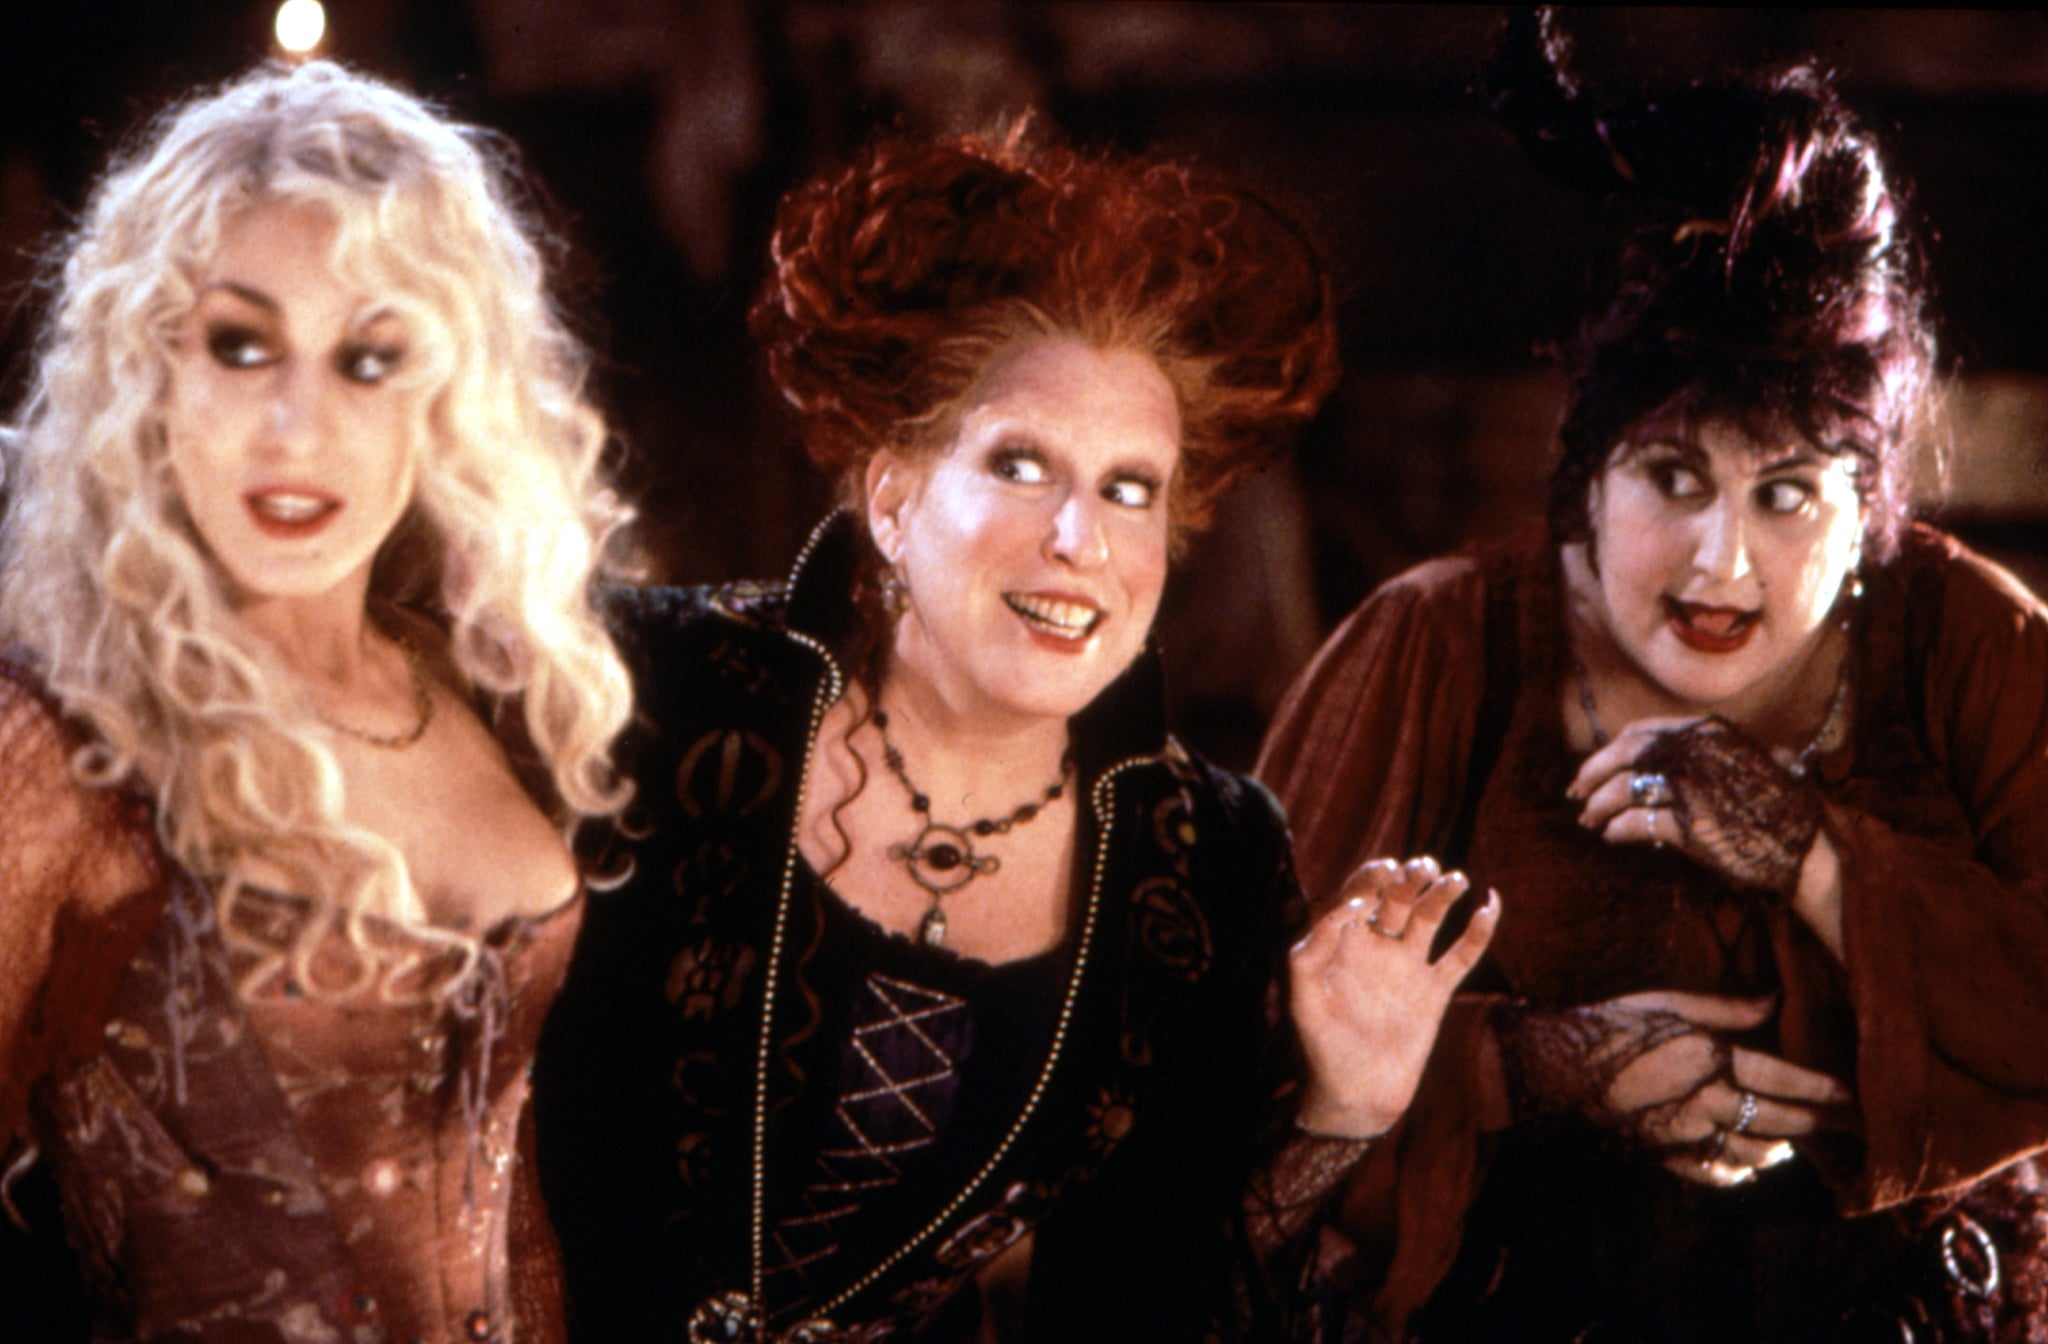 HOCUS POCUS, Sarah Jessica Parker, Bette Midler, Kathy Najimy, 1993, (c)Buena Vista Pictures/courtesy Everett Collection